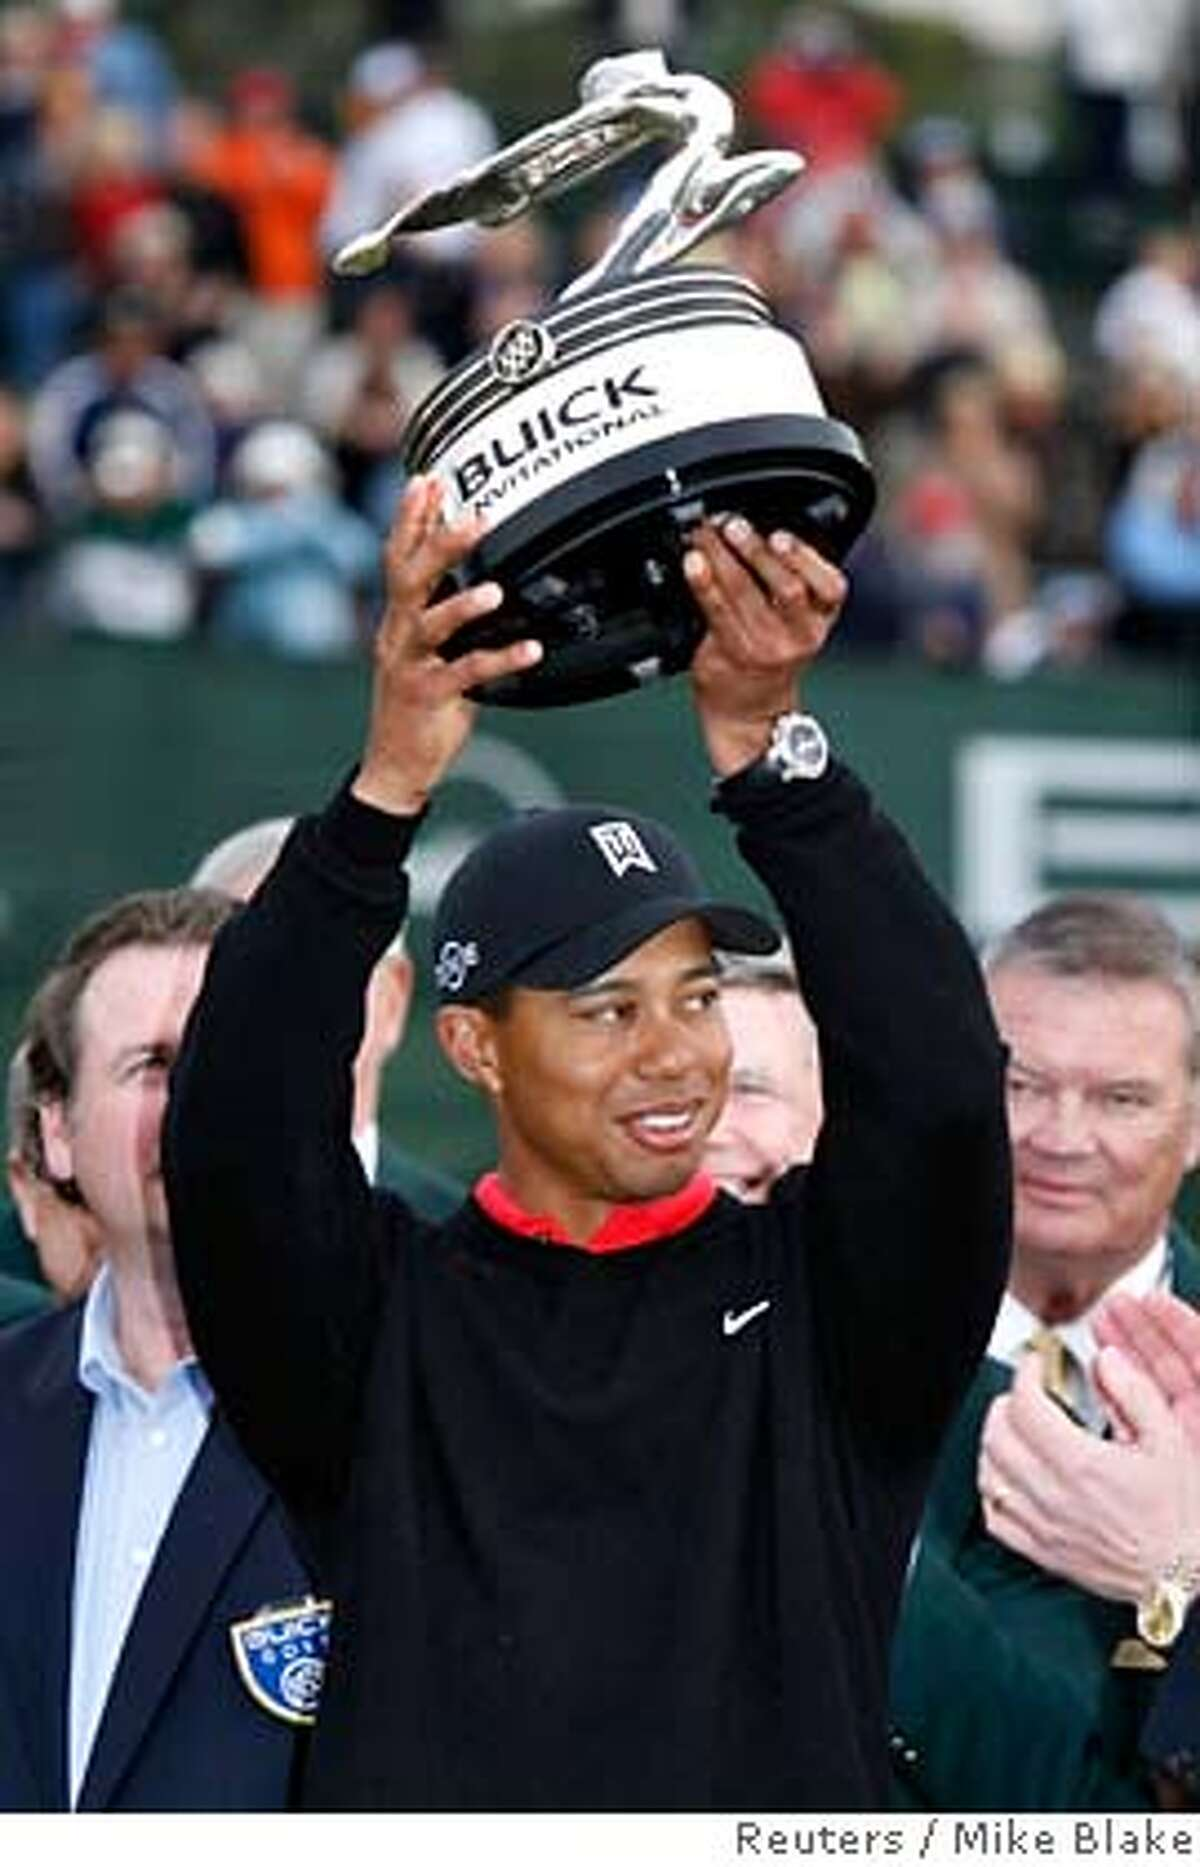 Tiger Woods holds up the trophy after winning the Buick Invitational golf tournament at Torrey Pines in La Jolla California January 28, 2007. Woods won his 7th consecutive PGA event with a final round 66 to finish 15-under par. REUTERS/Mike Blake(UNITED STATES)